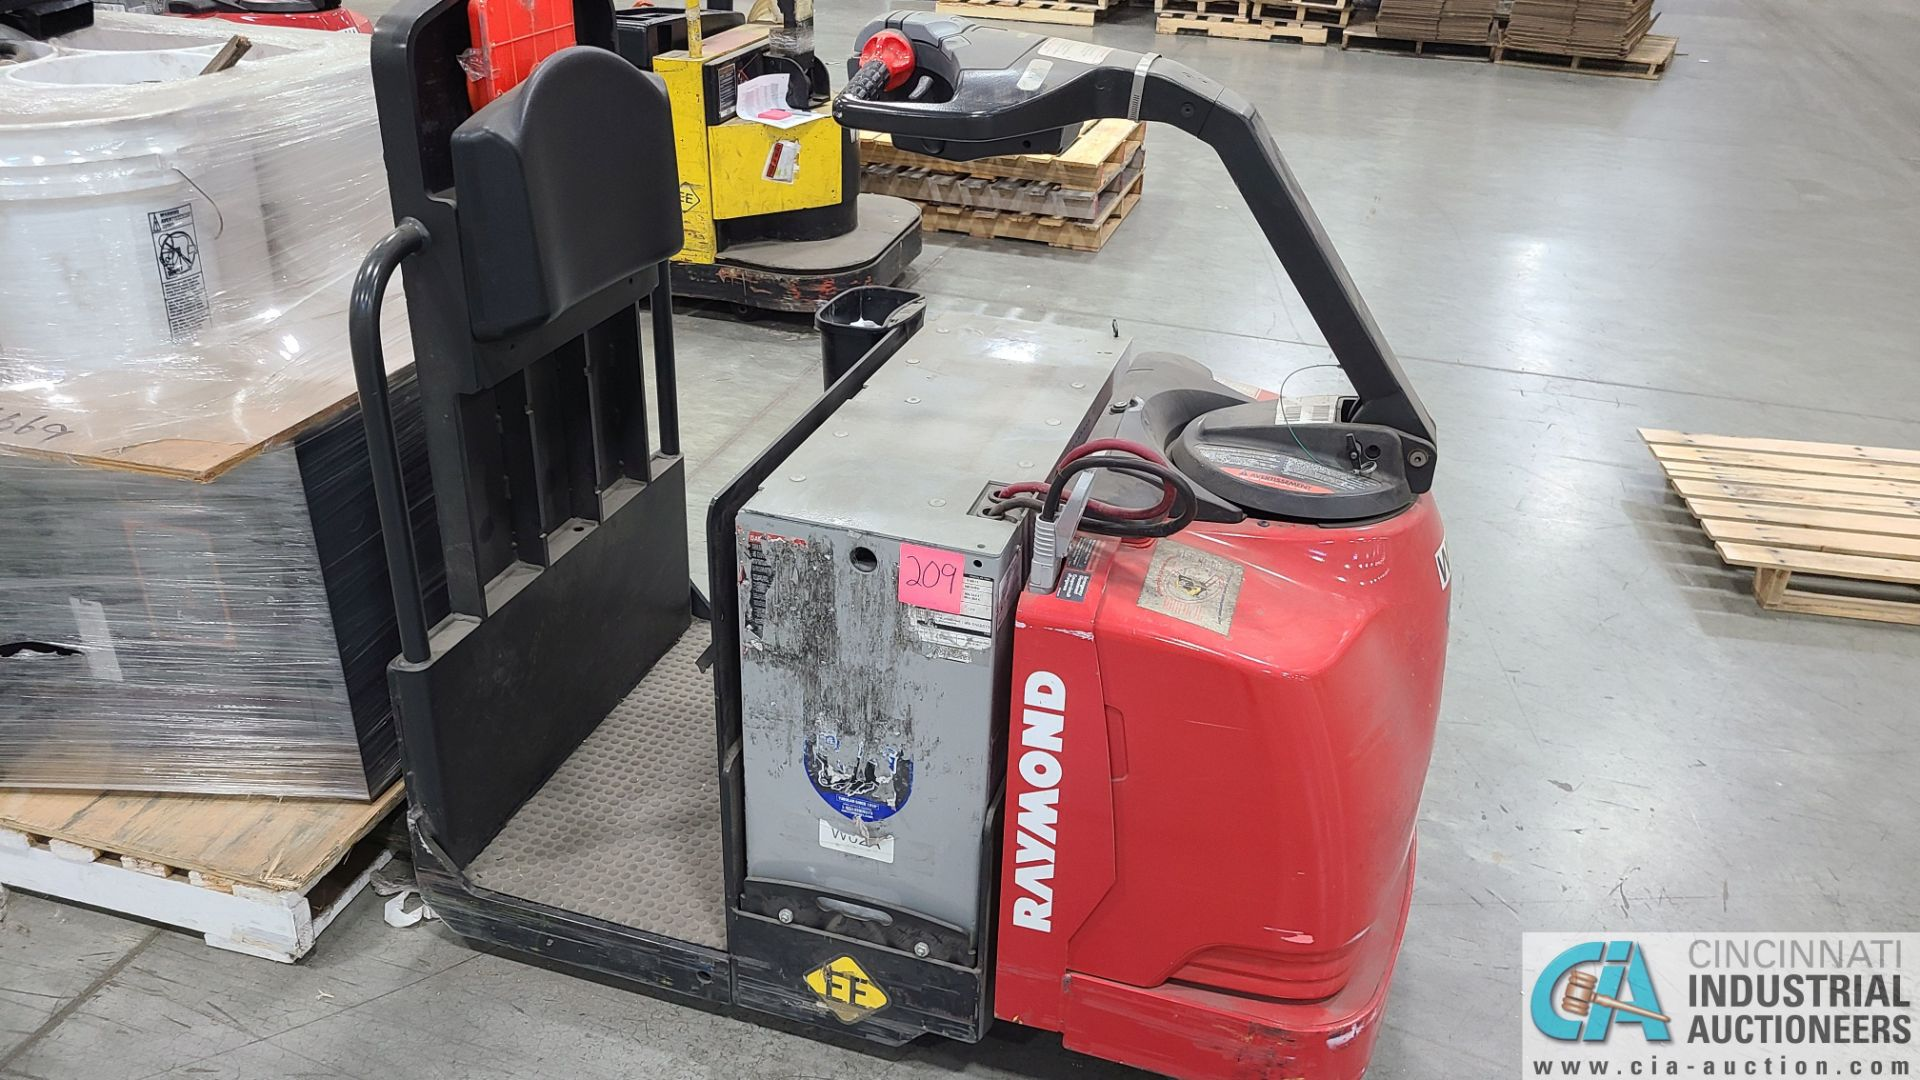 RAYMOND MODEL 8510 ELECTRIC PALLET TRUCK; S/N 851-15-11748, W/ BATTERY, HOURS N/A (NEW 2015) (2570 - Image 3 of 4